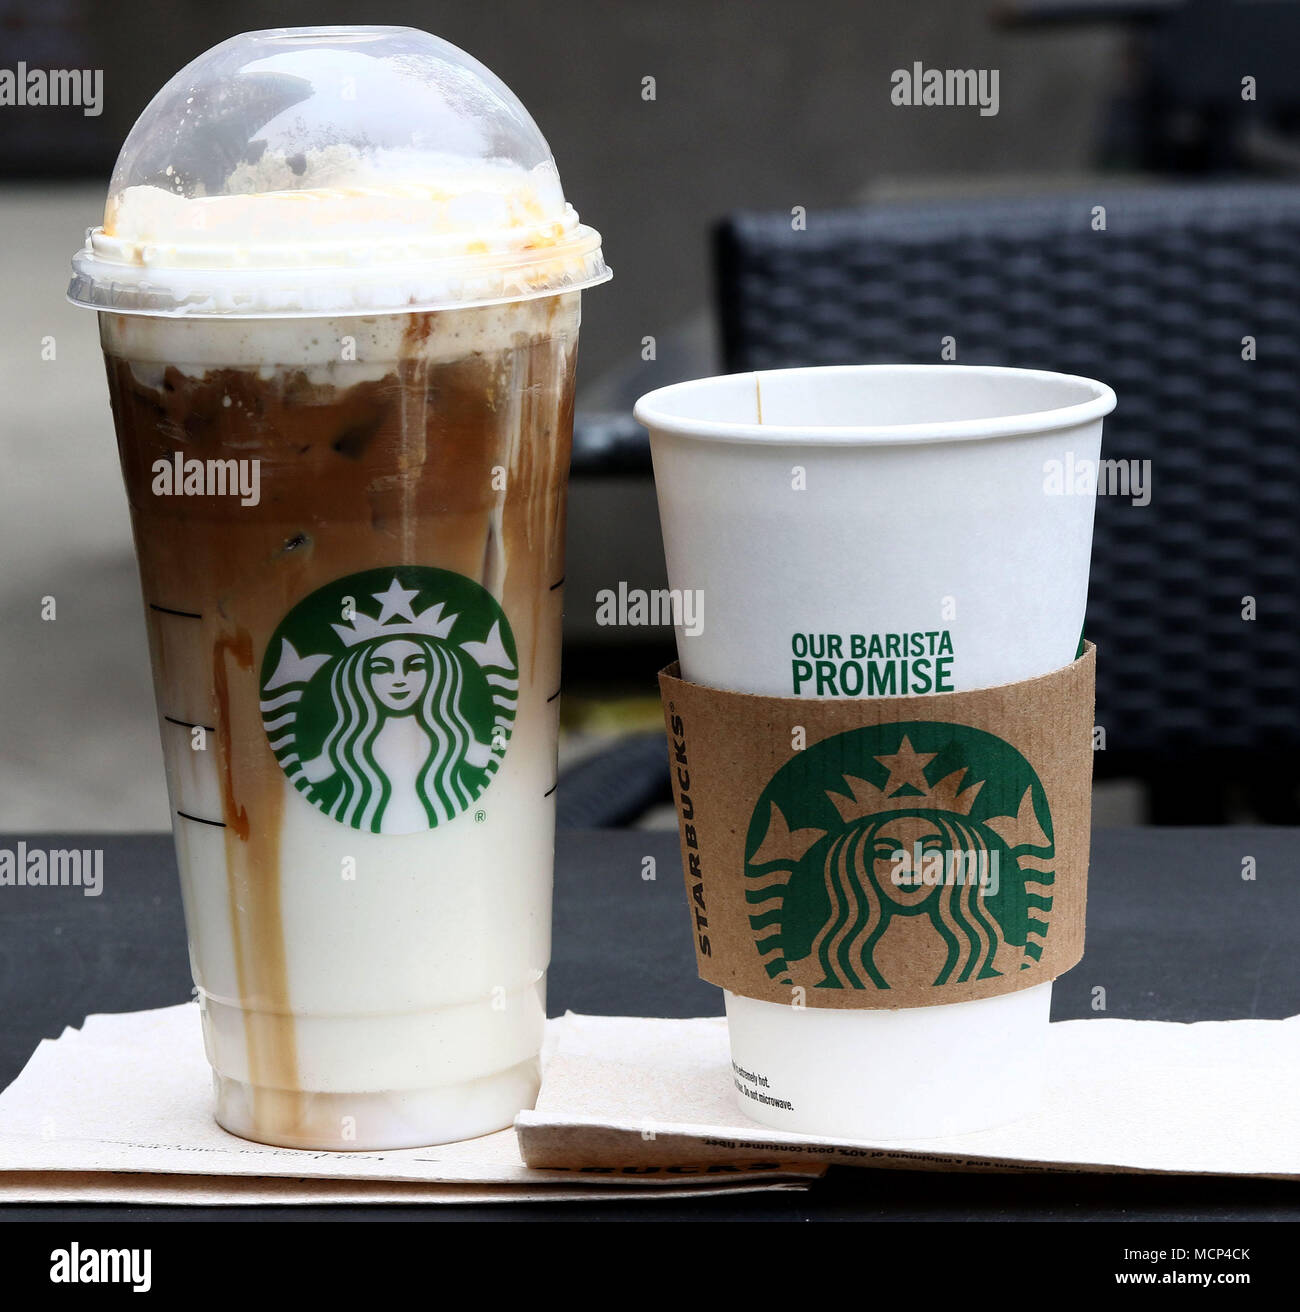 A View Of Starbucks Iced Caramel Macchiato And Black Coffee After It Was Announced That Will Close 8000 Stores For An